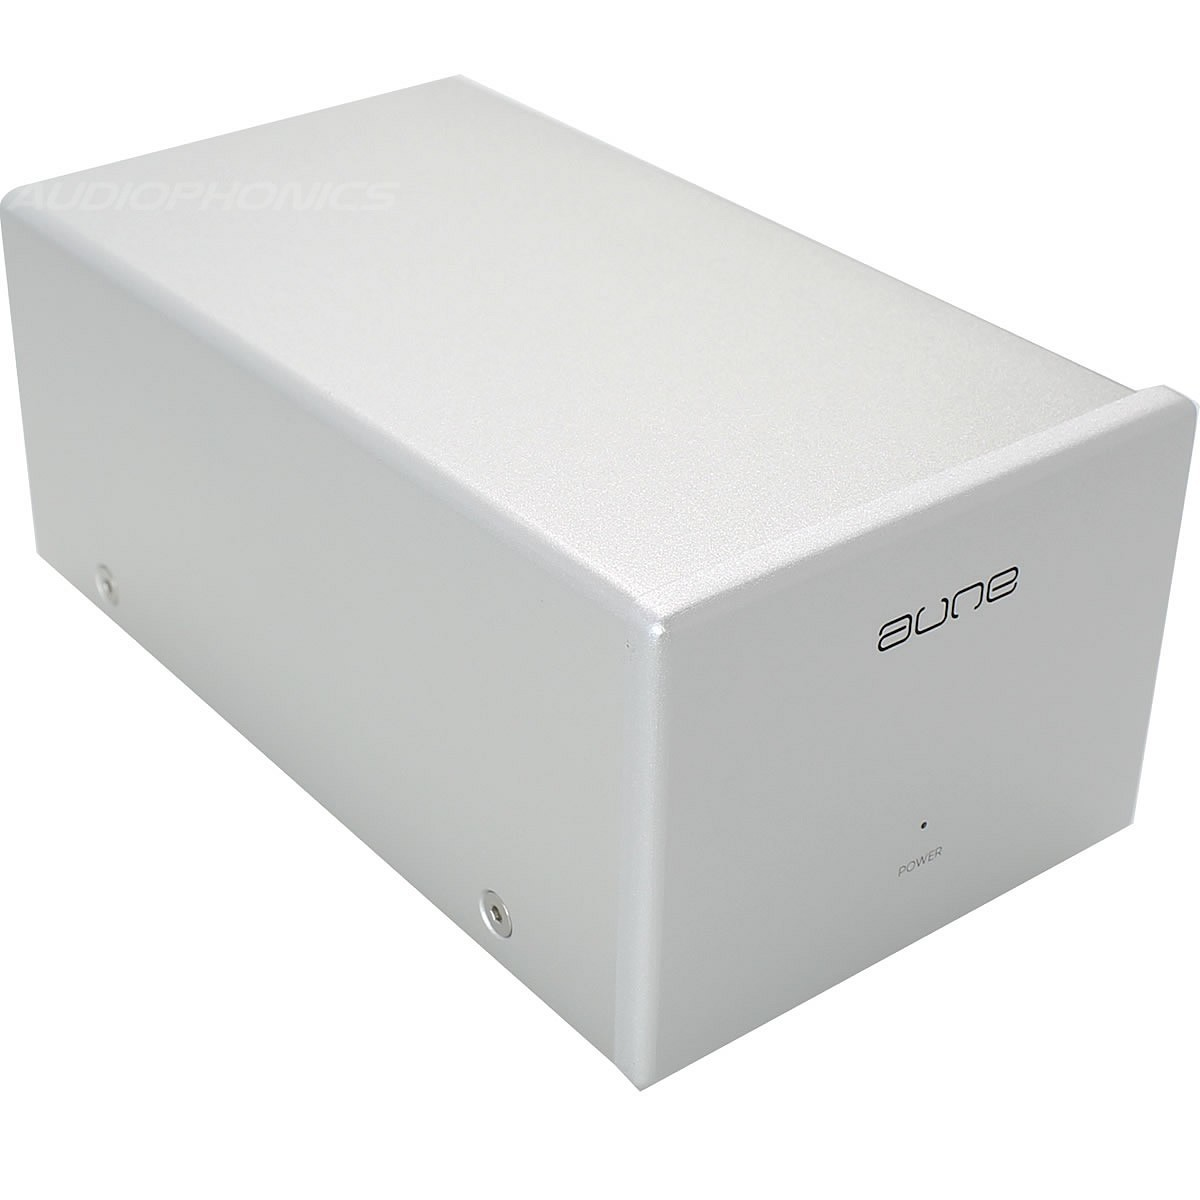 AUNE XP1 External Linear Power Supply for AUNE X1s / X5s / X7s / T1se Silver